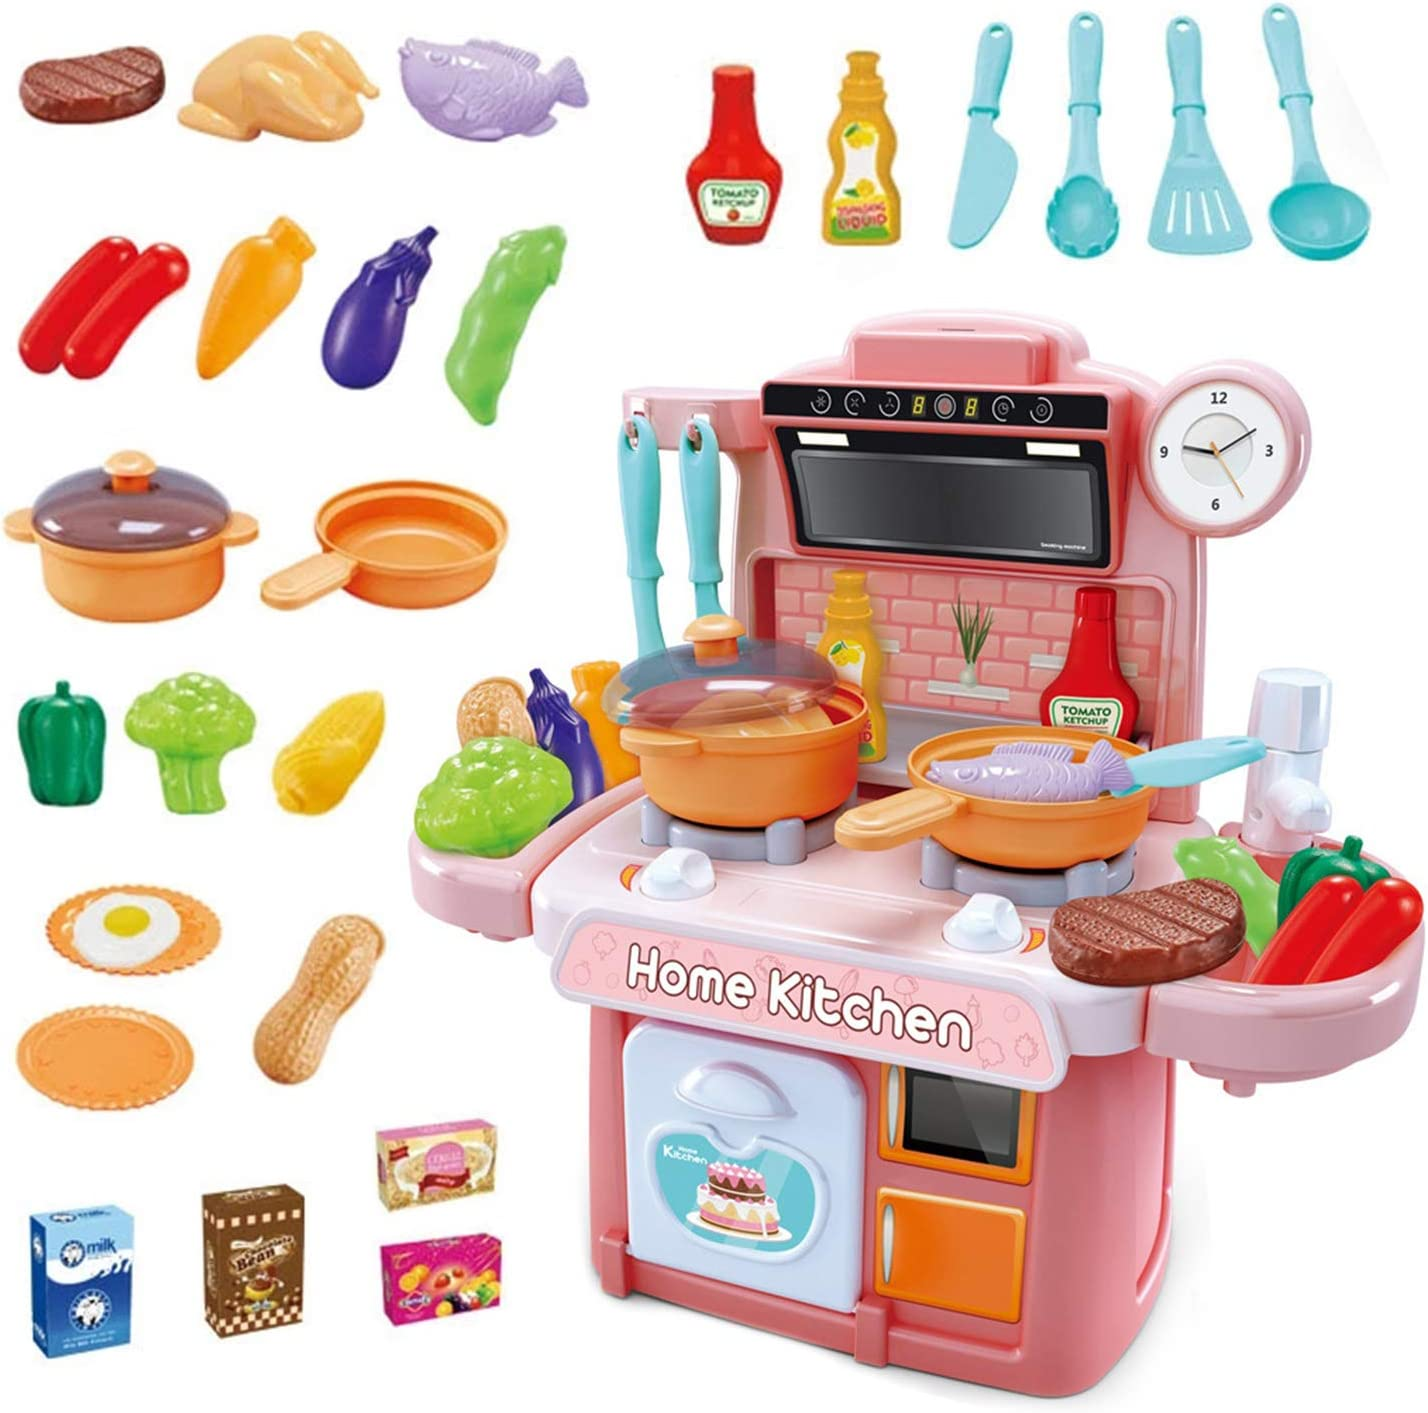 GuDoQi Play Kitchen Accessories Toys for Kids, with Light and Boiled Water Sound Effect and Vegetables and Food, Funny Cooking Play Toy for Kids Toddlers